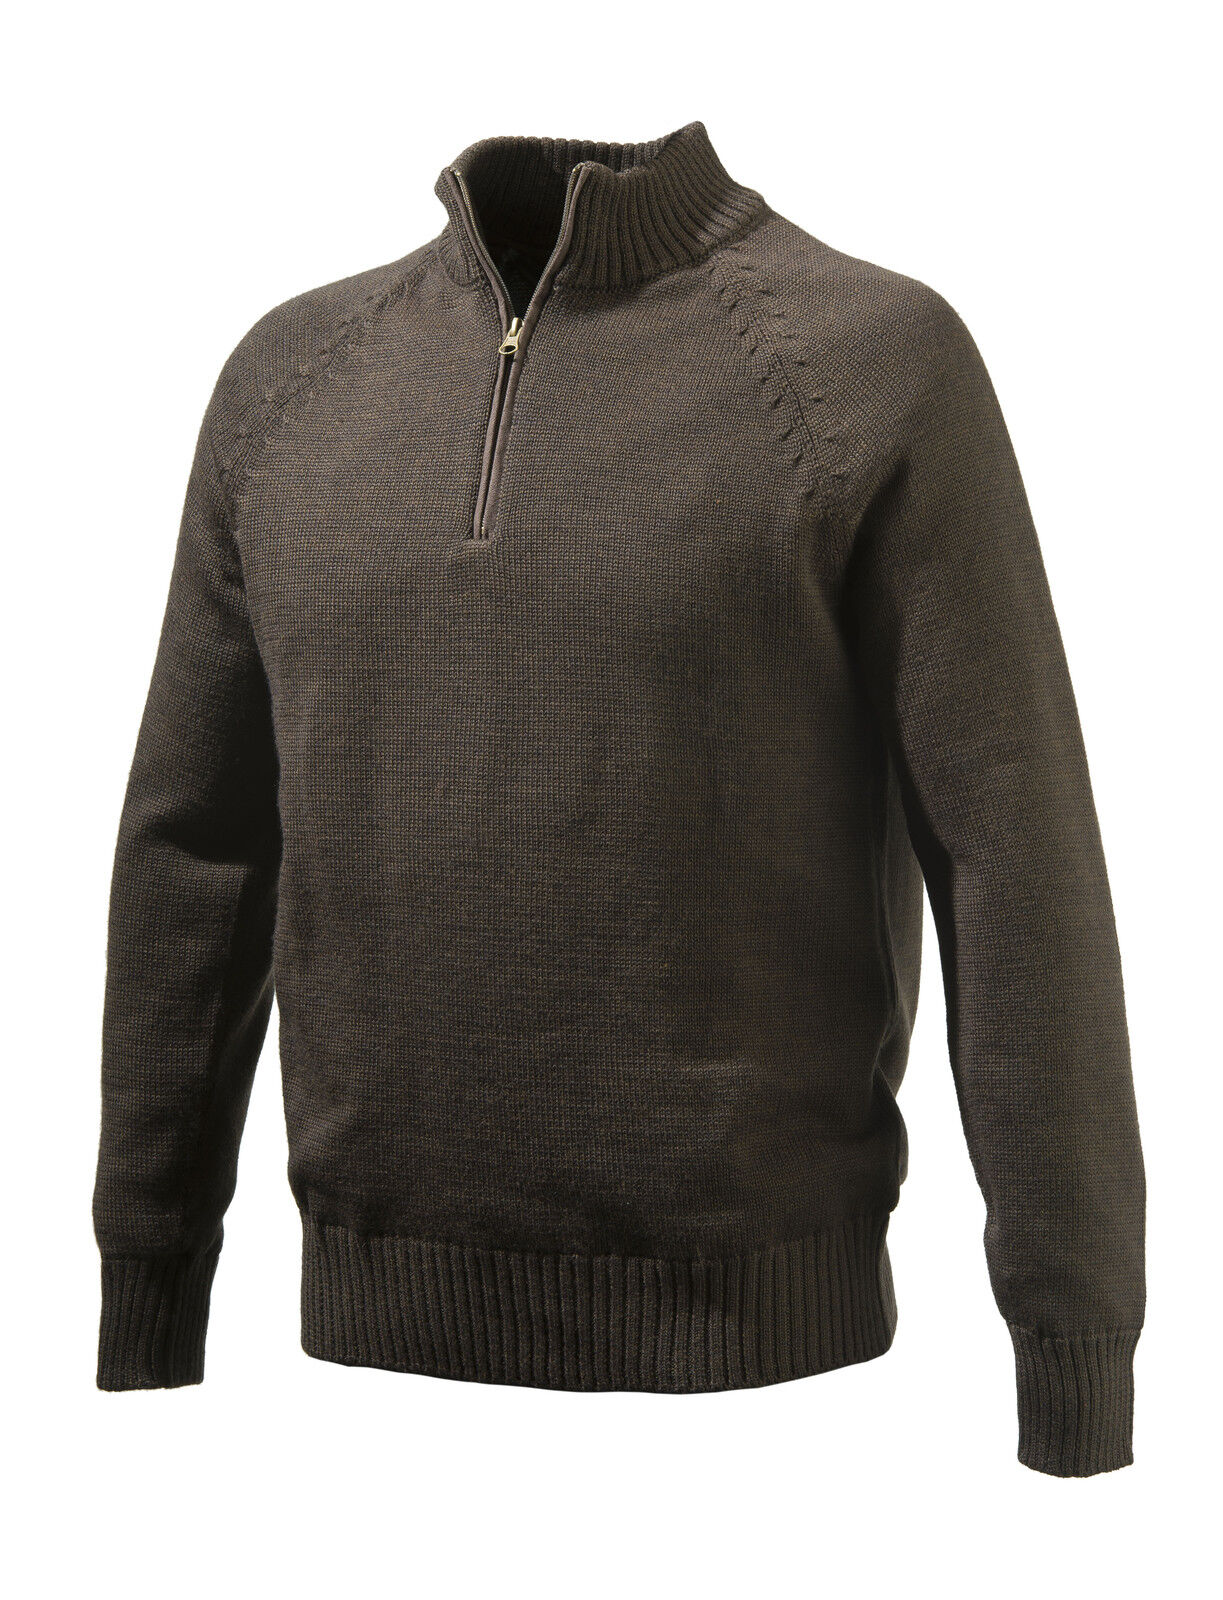 Men's Beretta Technowindshield 1 2 Zip Sweater - All sizes - new